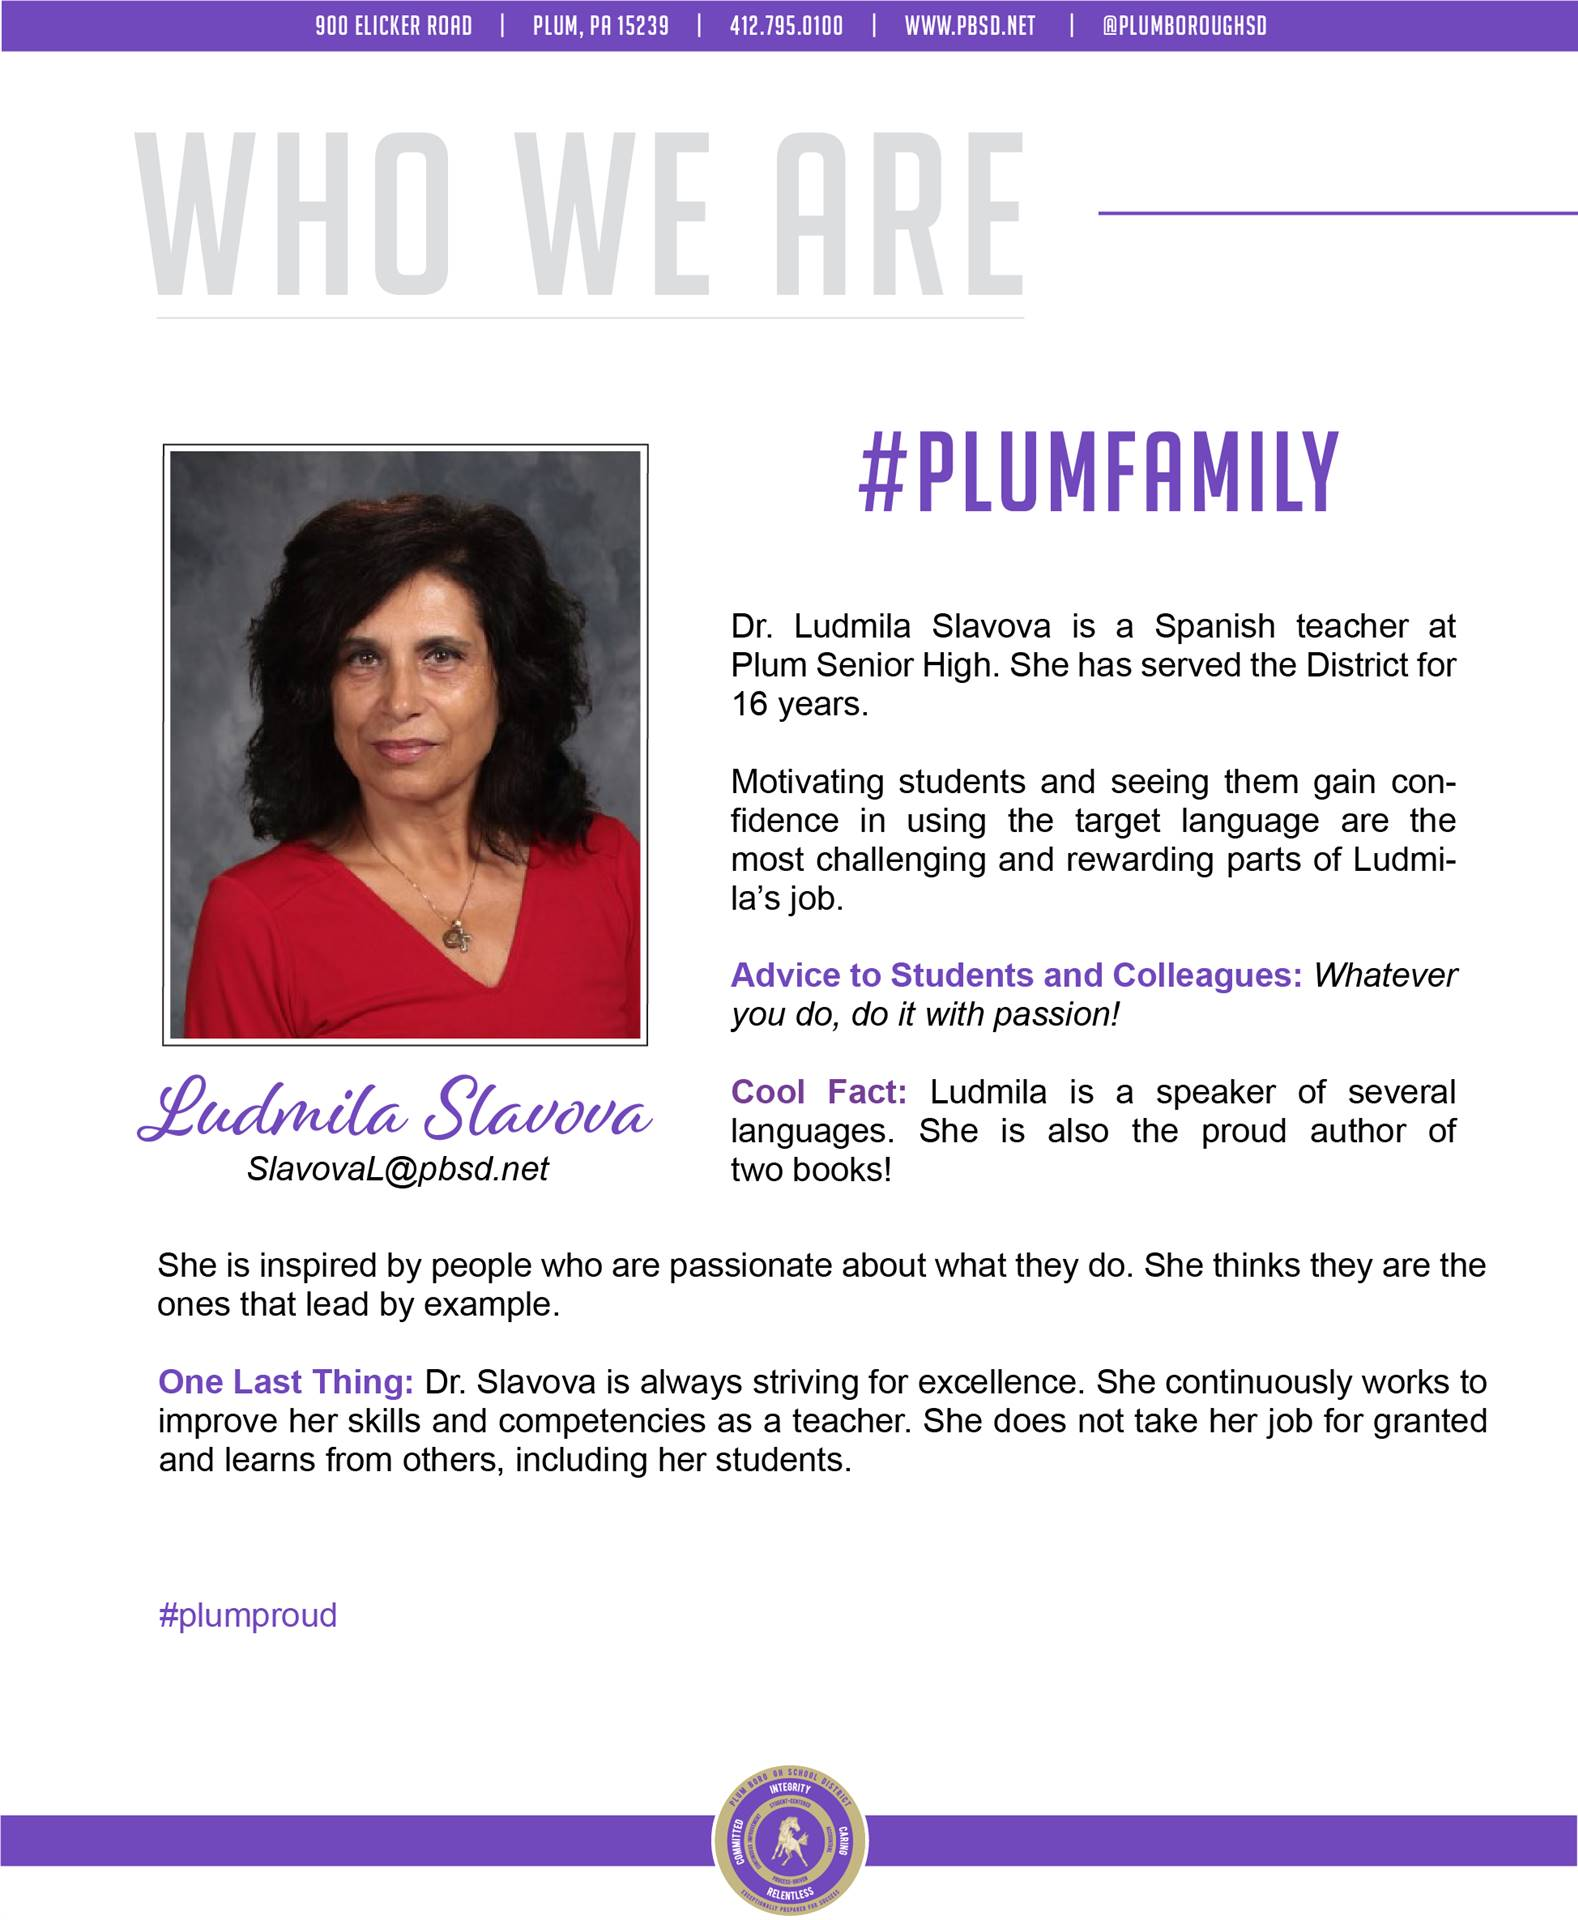 Who We Are Wednesday features Ludmila Slavova.